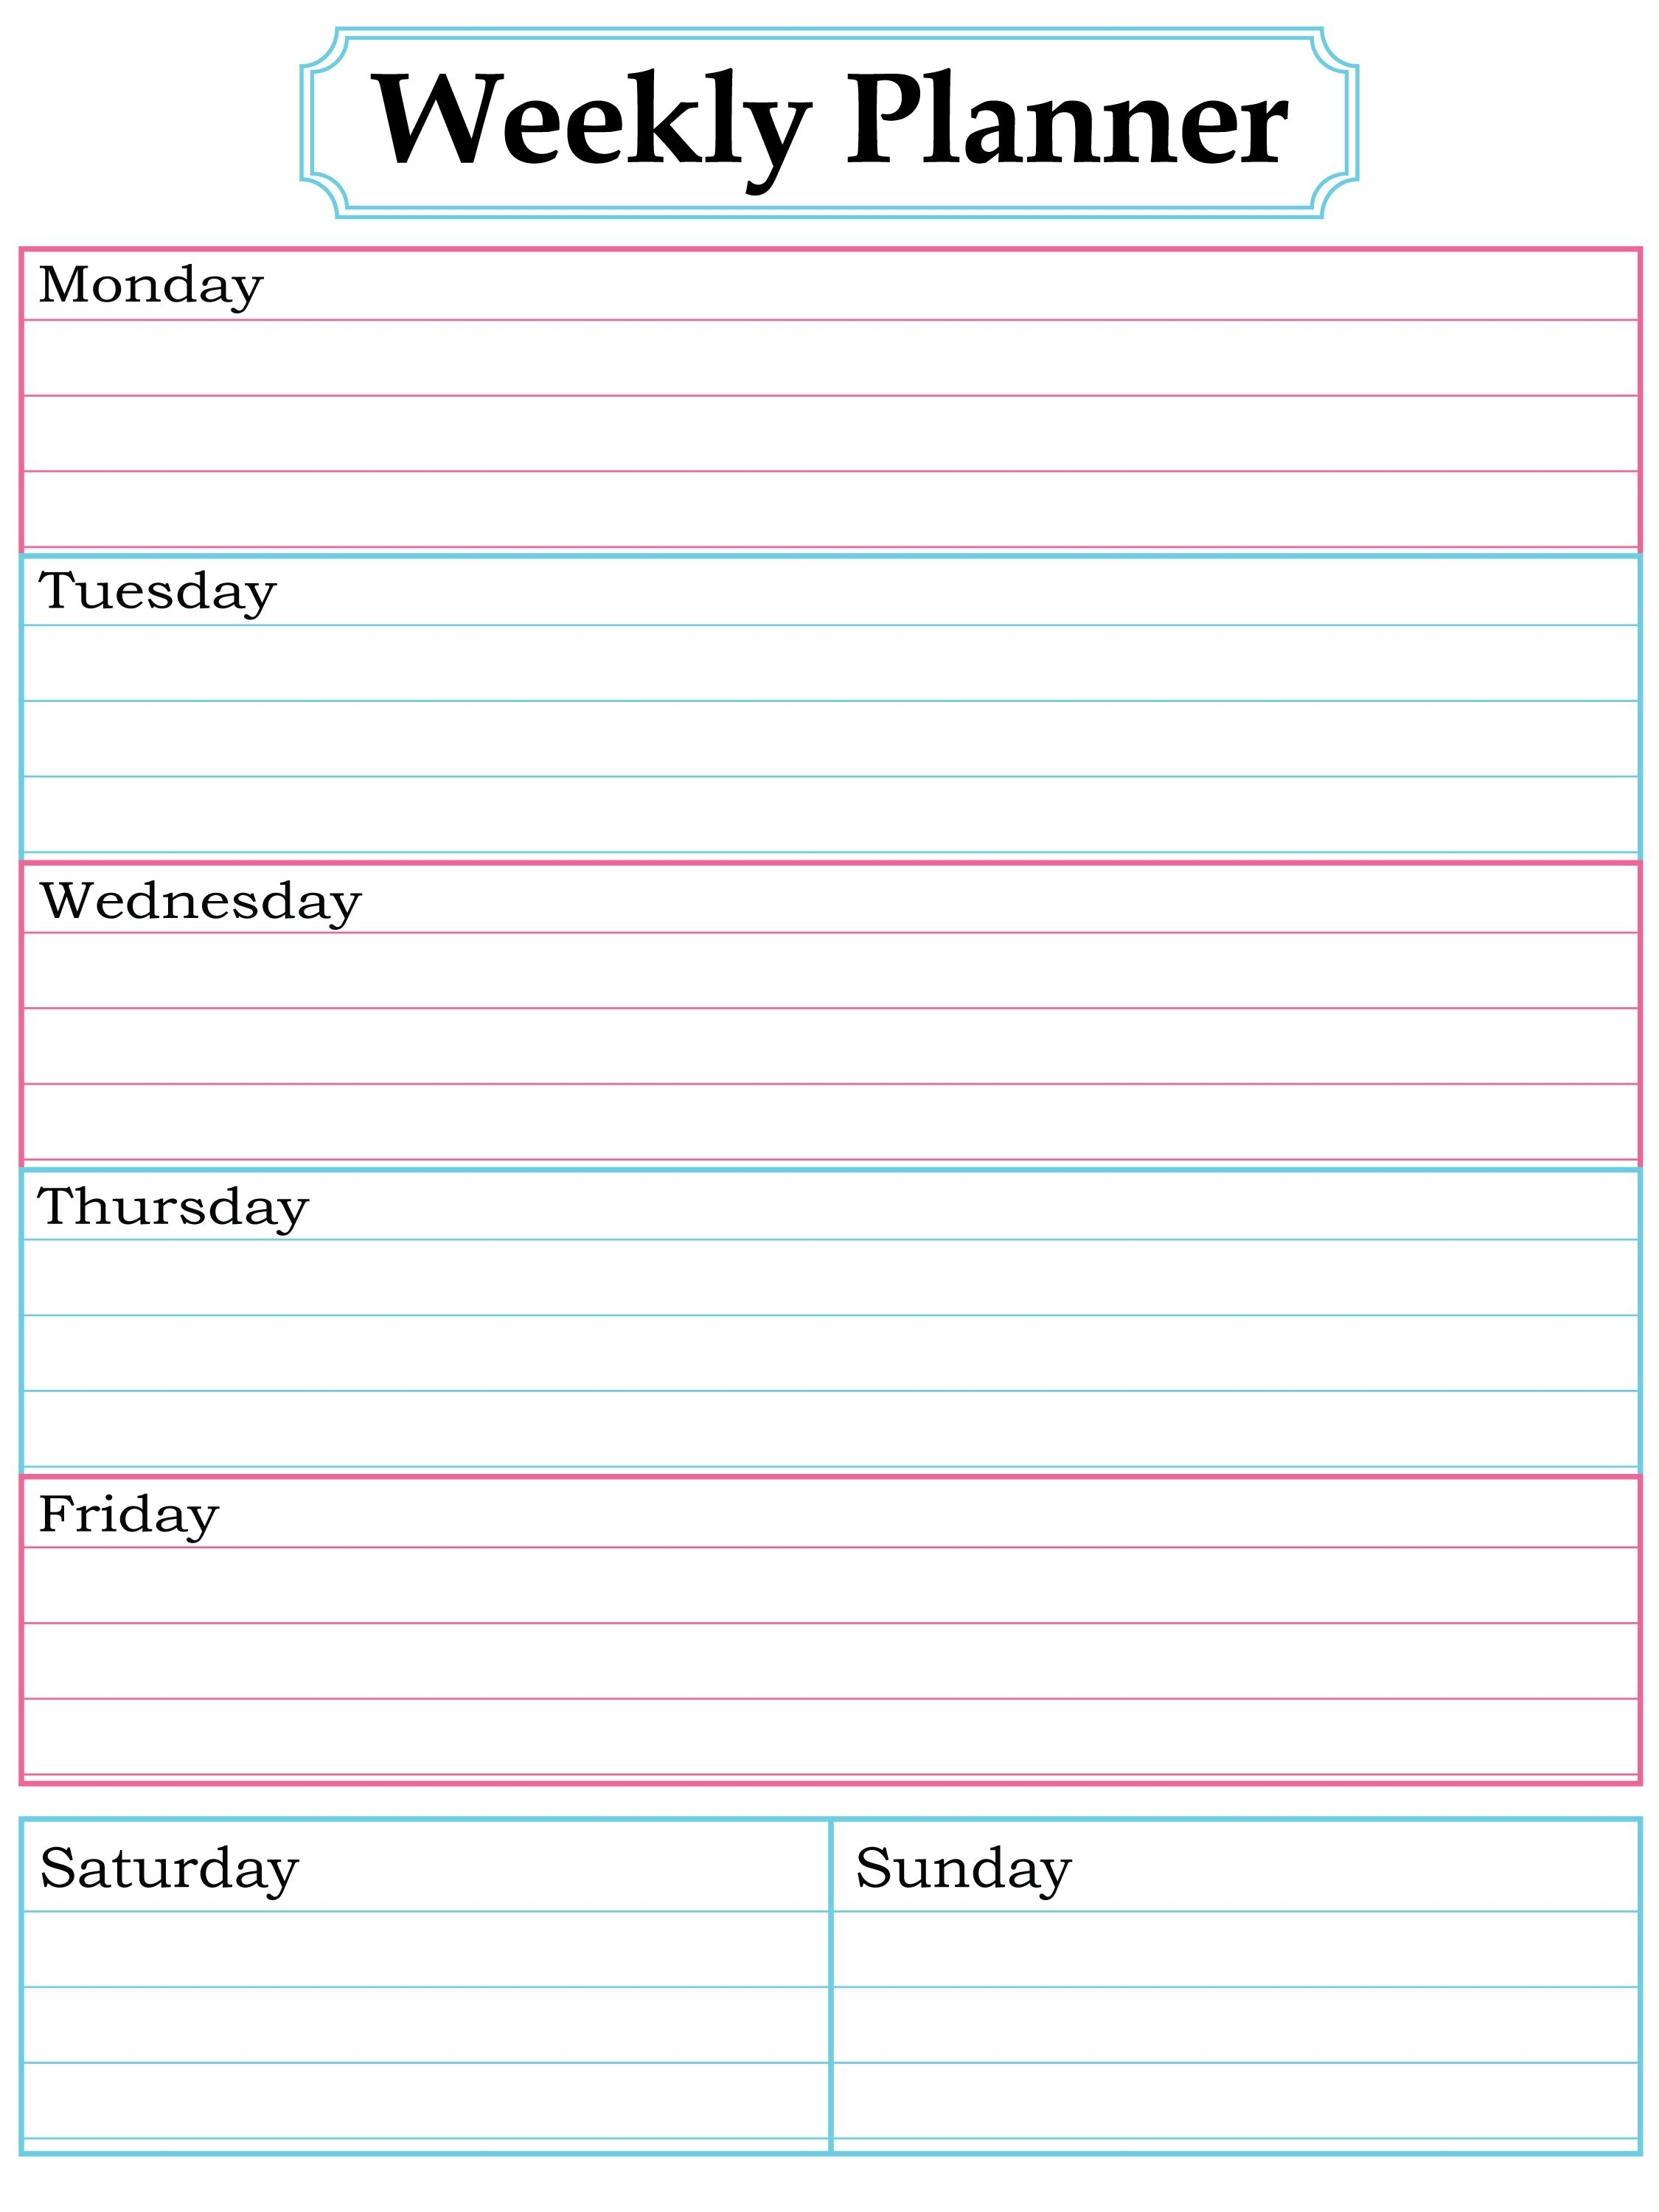 Weekly Calendar Organizer Printable : Weekly planner printable nice simple clean lines